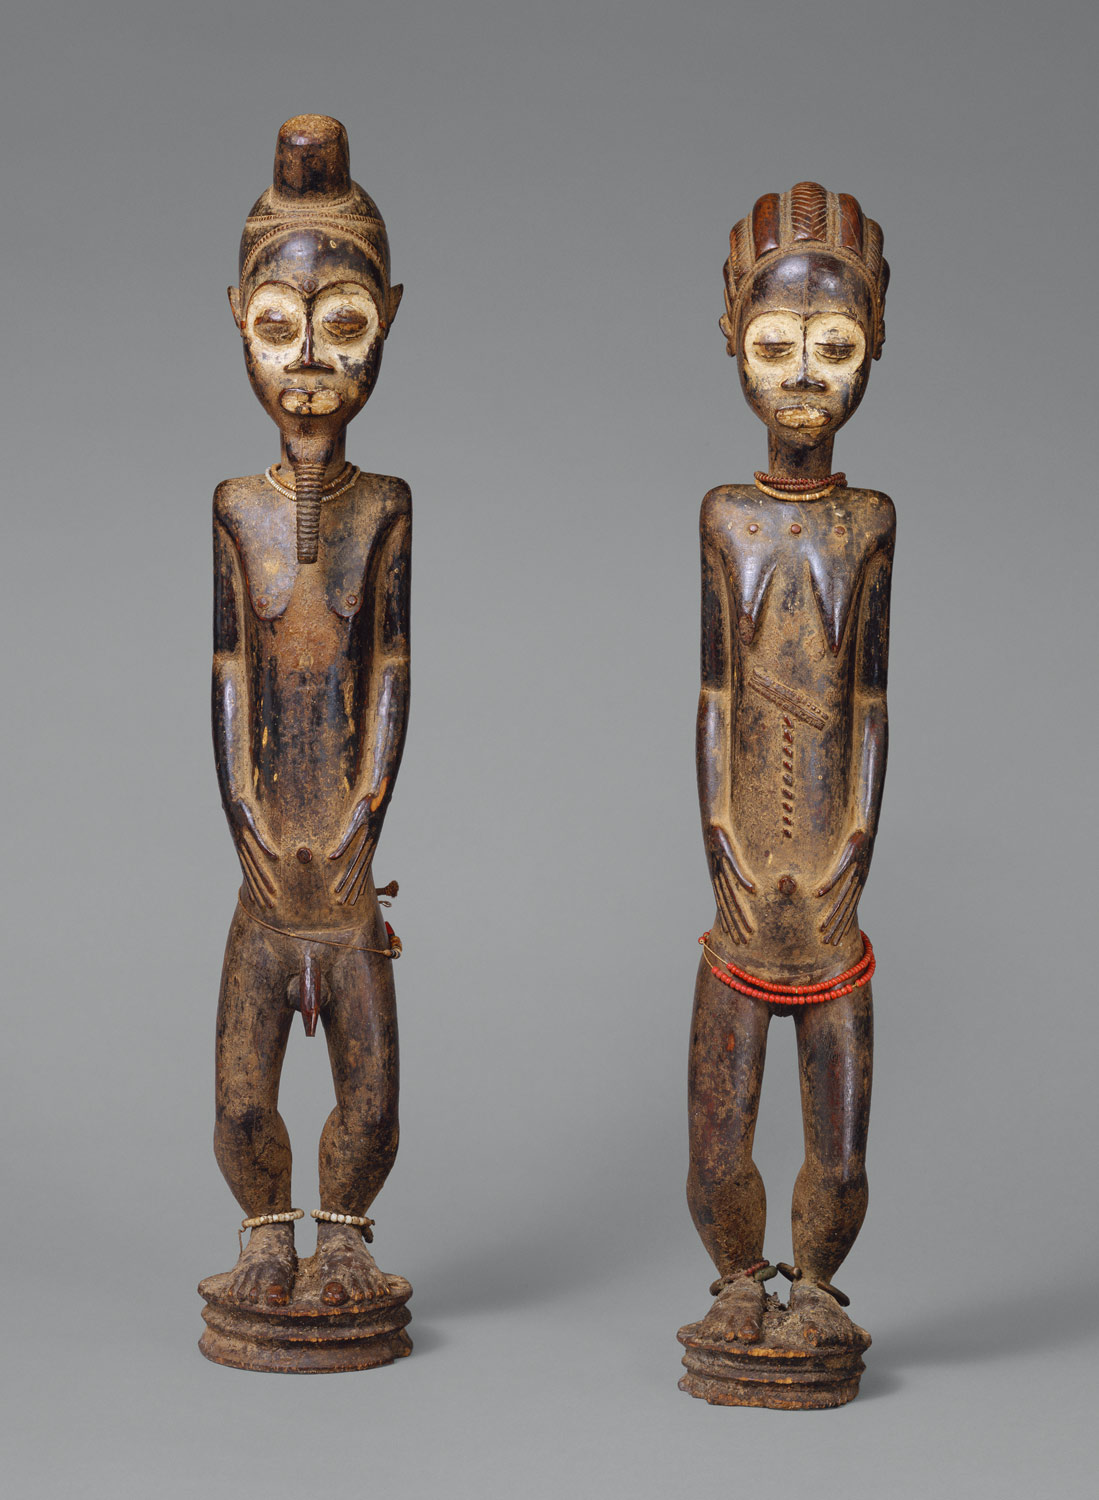 Pair of Diviners Figures